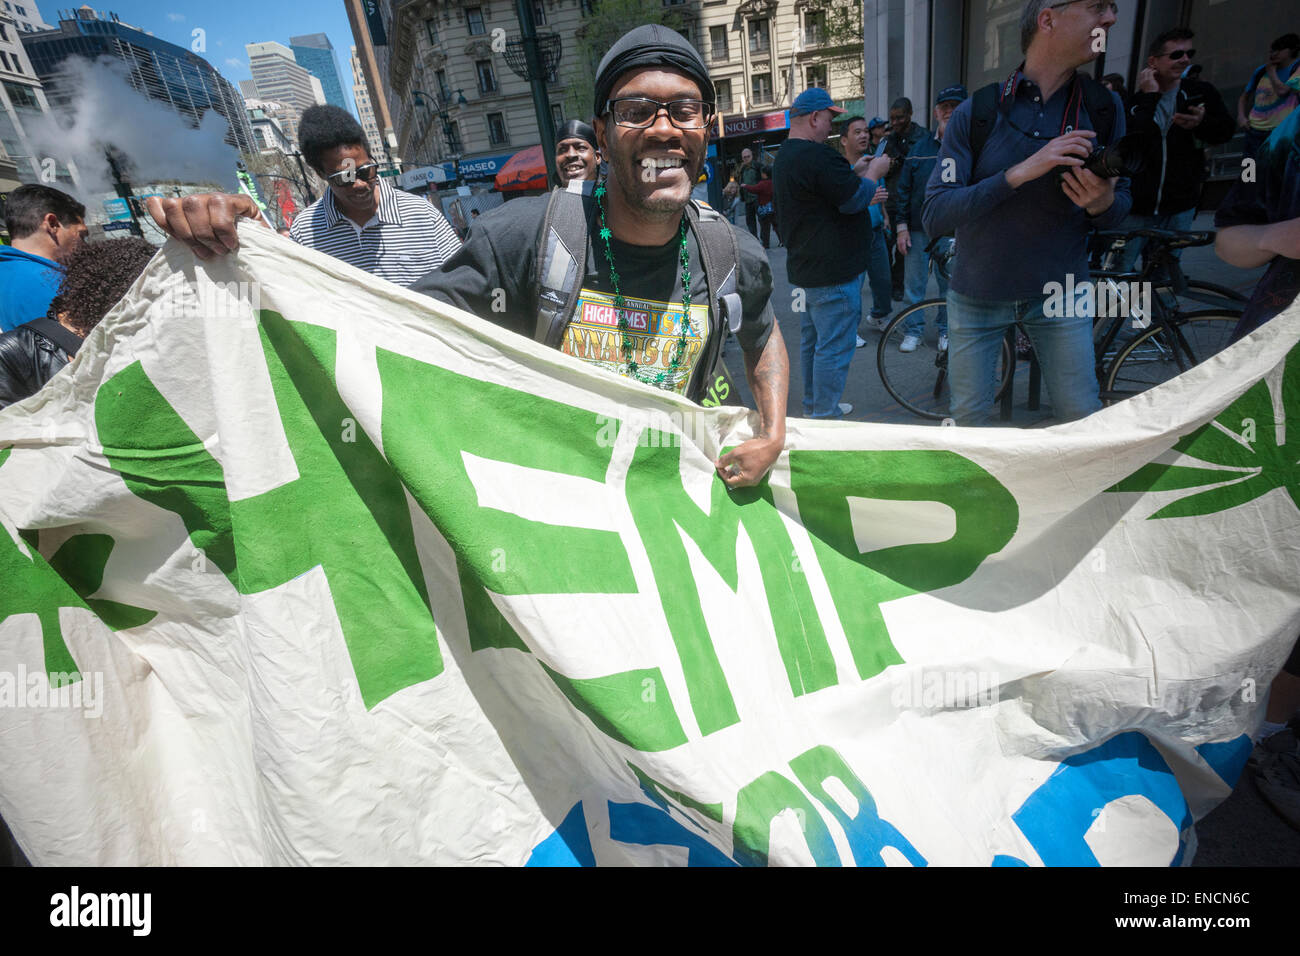 New York, USA. 2nd May, 2015. Advocates for the legalization of marijuana march in New York on Saturday, May 2, - Stock Image